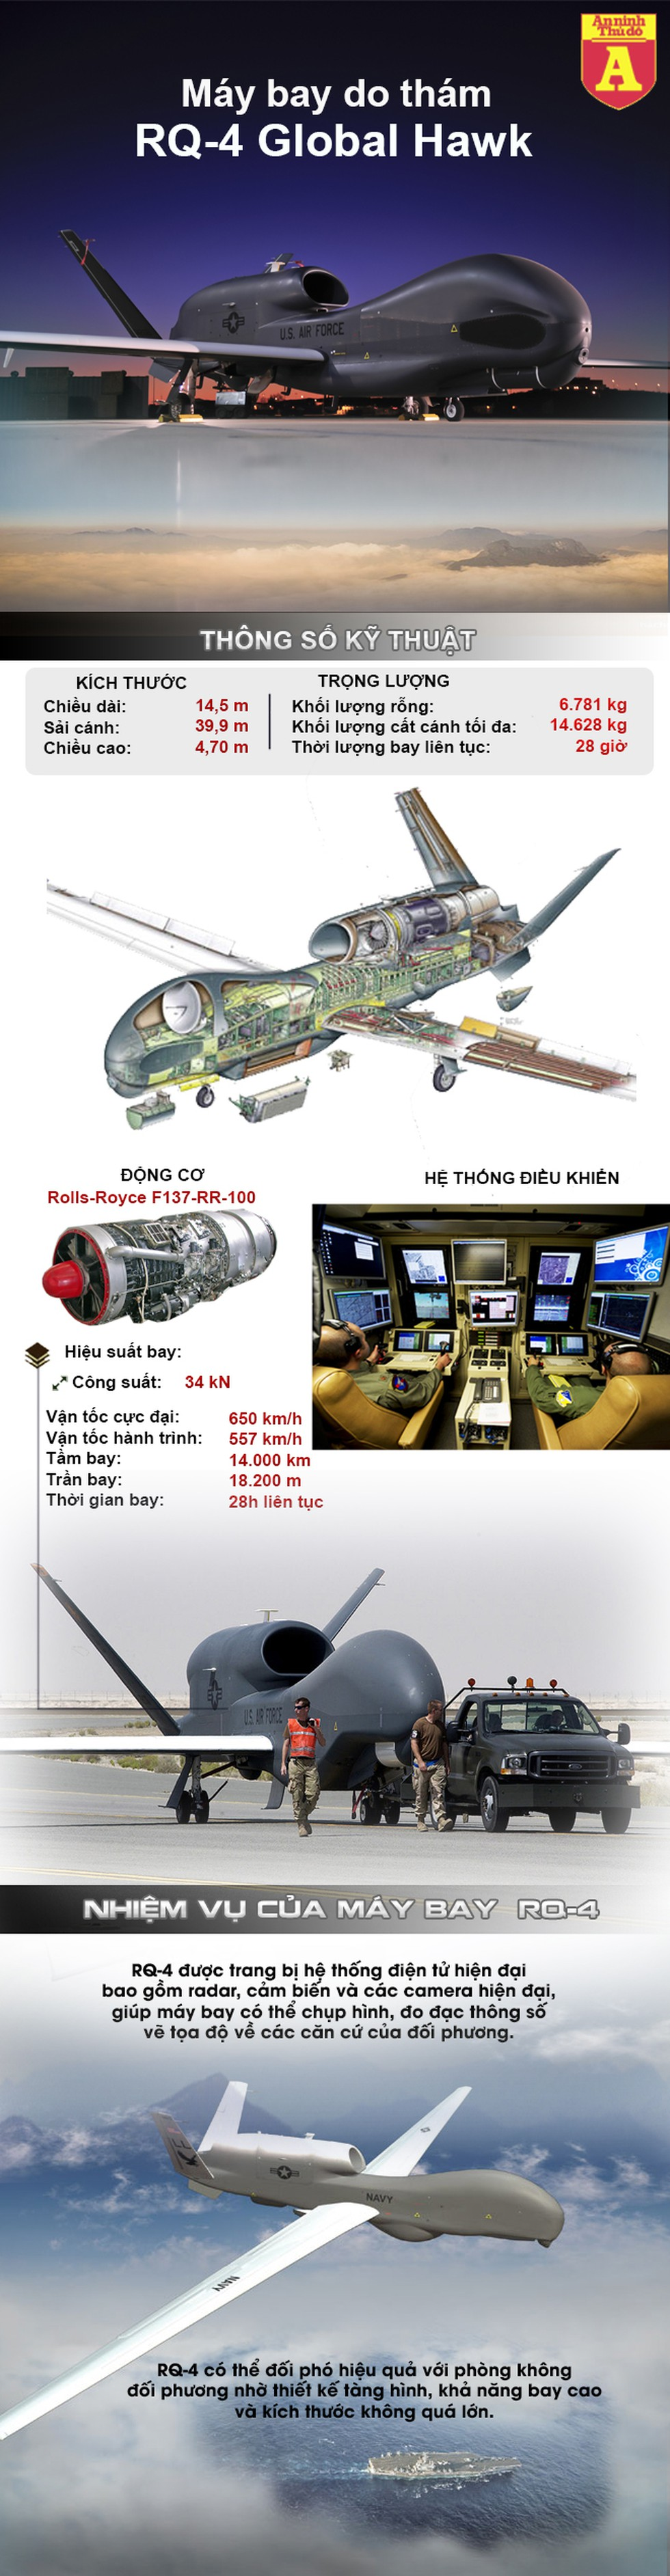 """infographic: """"bong ma do tham"""" rq-4 khien can cu nga lo dien hoan toan hinh anh 1"""